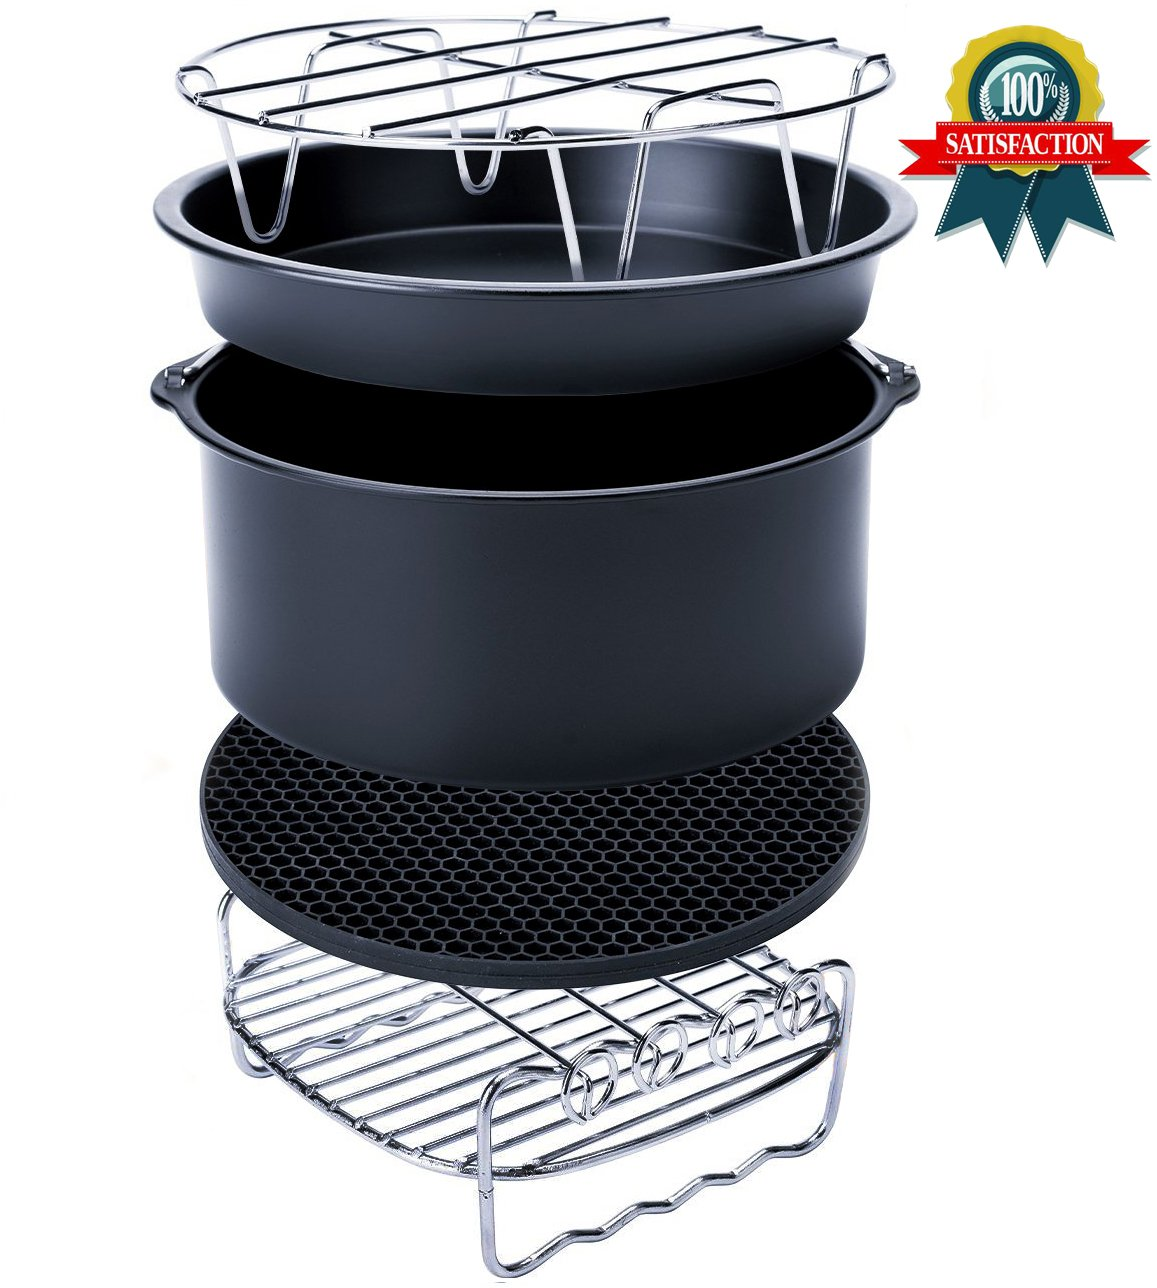 Air Fryer Accessories for Gowise Phillips and Cozyna Etc,Air Fryer Accessories Kit of 5 Fit all 3.7QT-5.3QT-5.8QT FourWinner